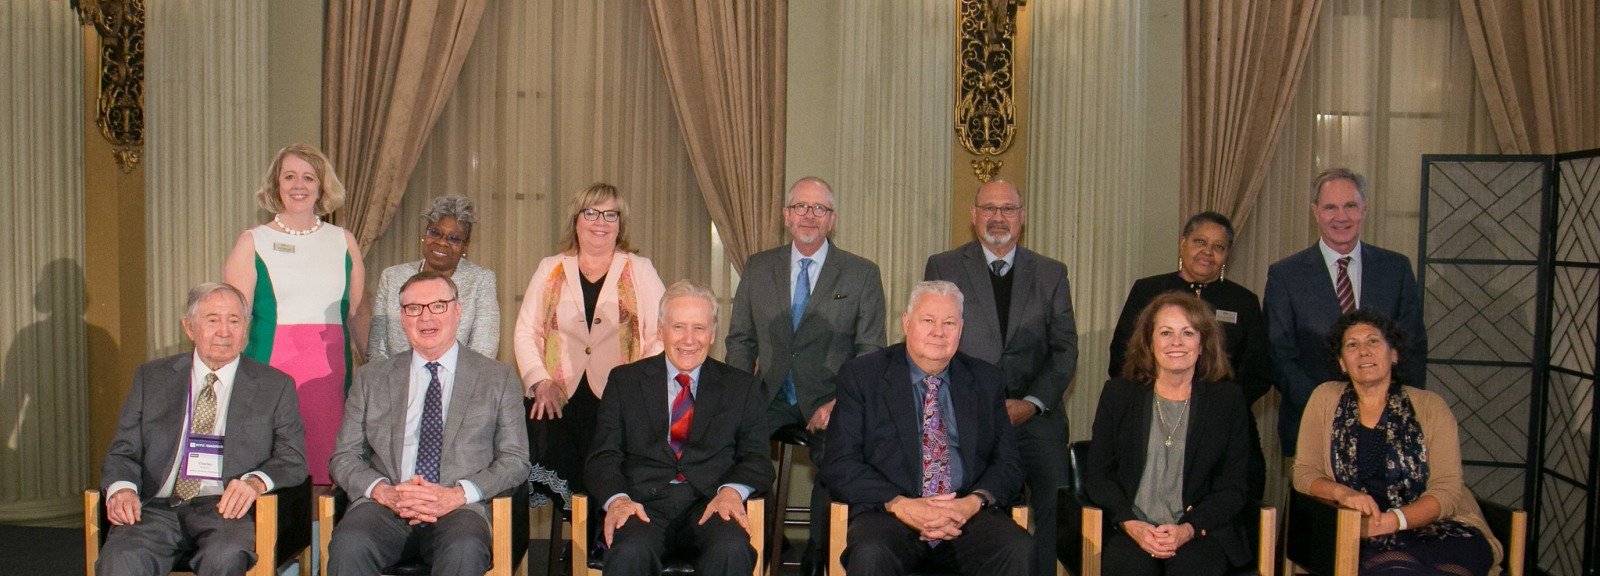 Past NASPAA Presidents